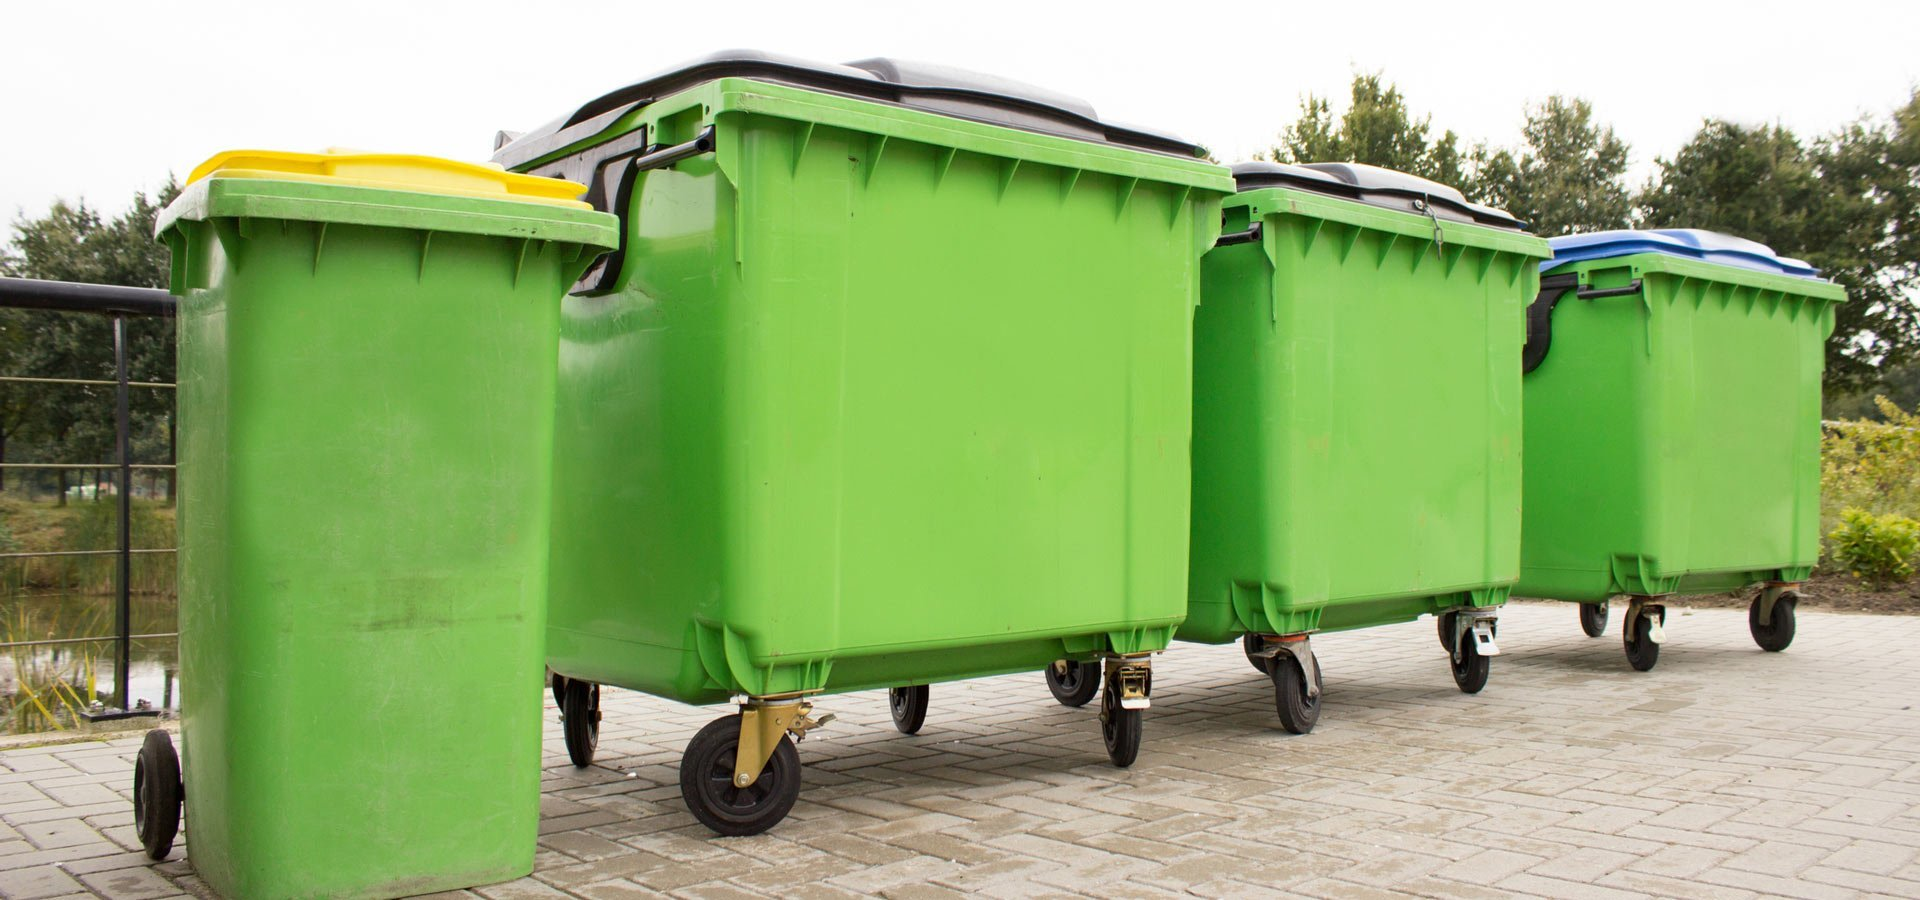 lightning bin hire four green garbage containers standing diagonally in a row